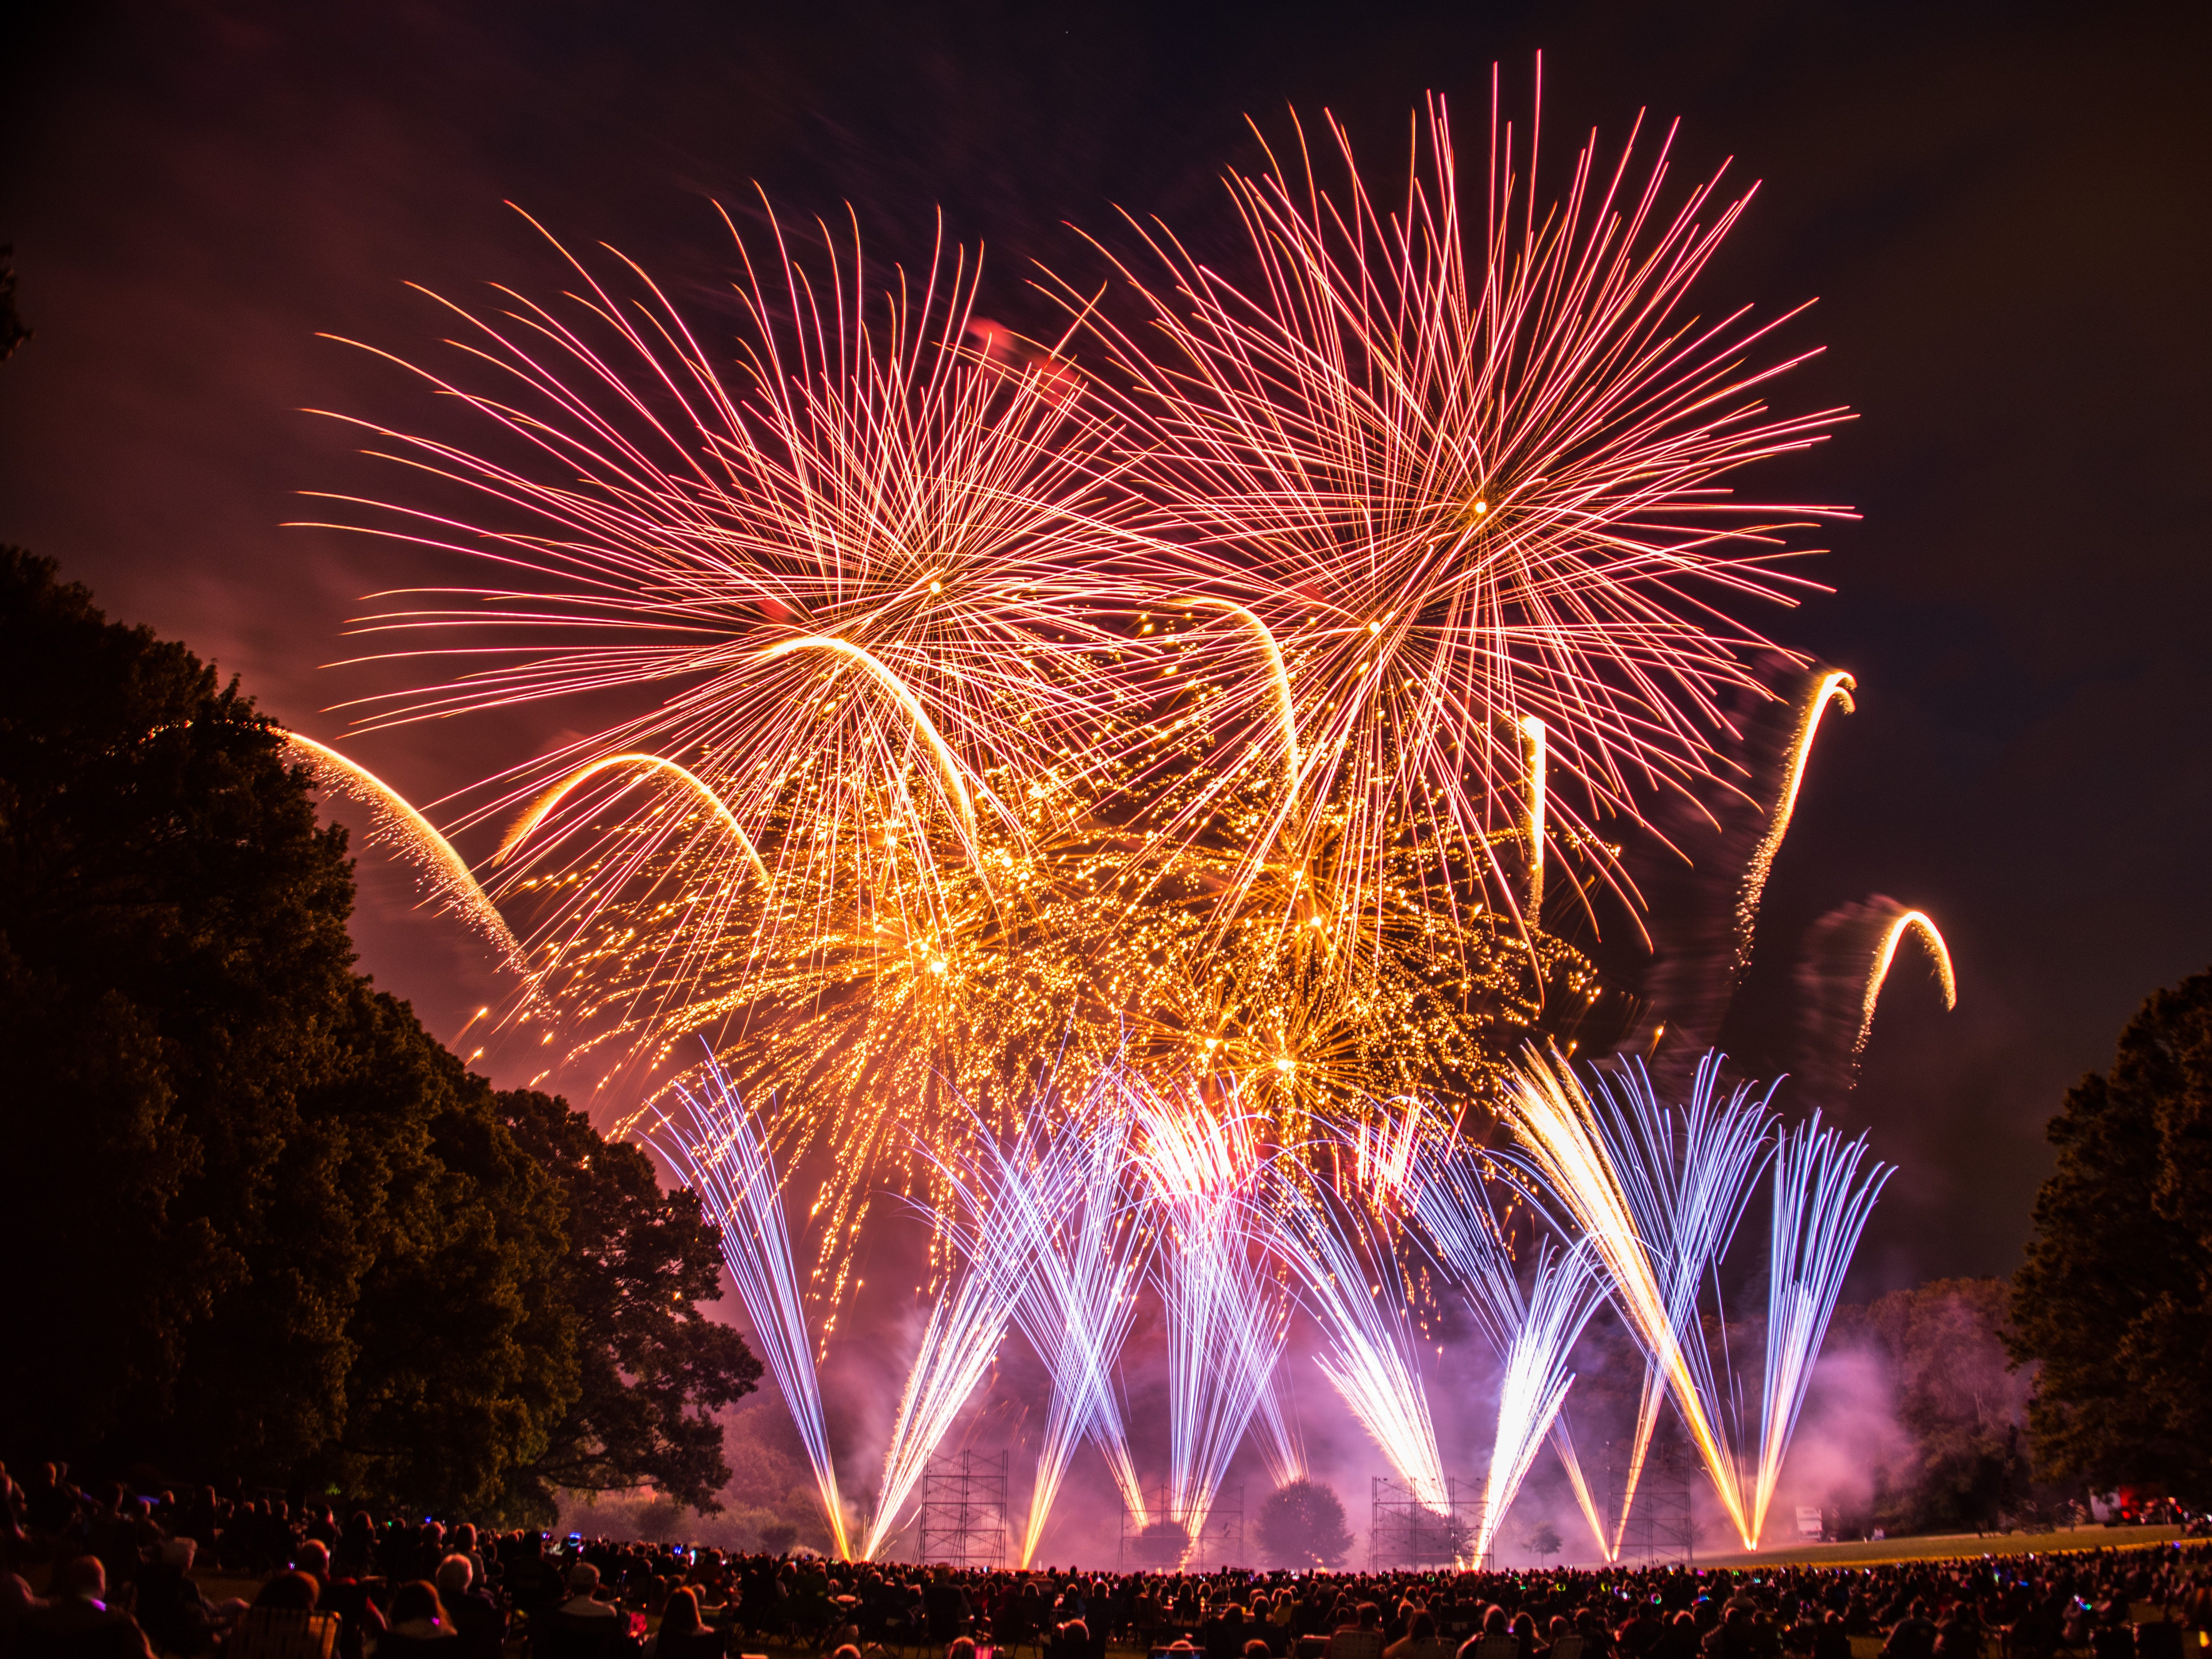 Attend a fireworks display at Hagley Museum, said to be the best of the summer in the state. www.hagley.org/calendar/fireworks-hagley-presented-mt-bank-and-wilmington-trust